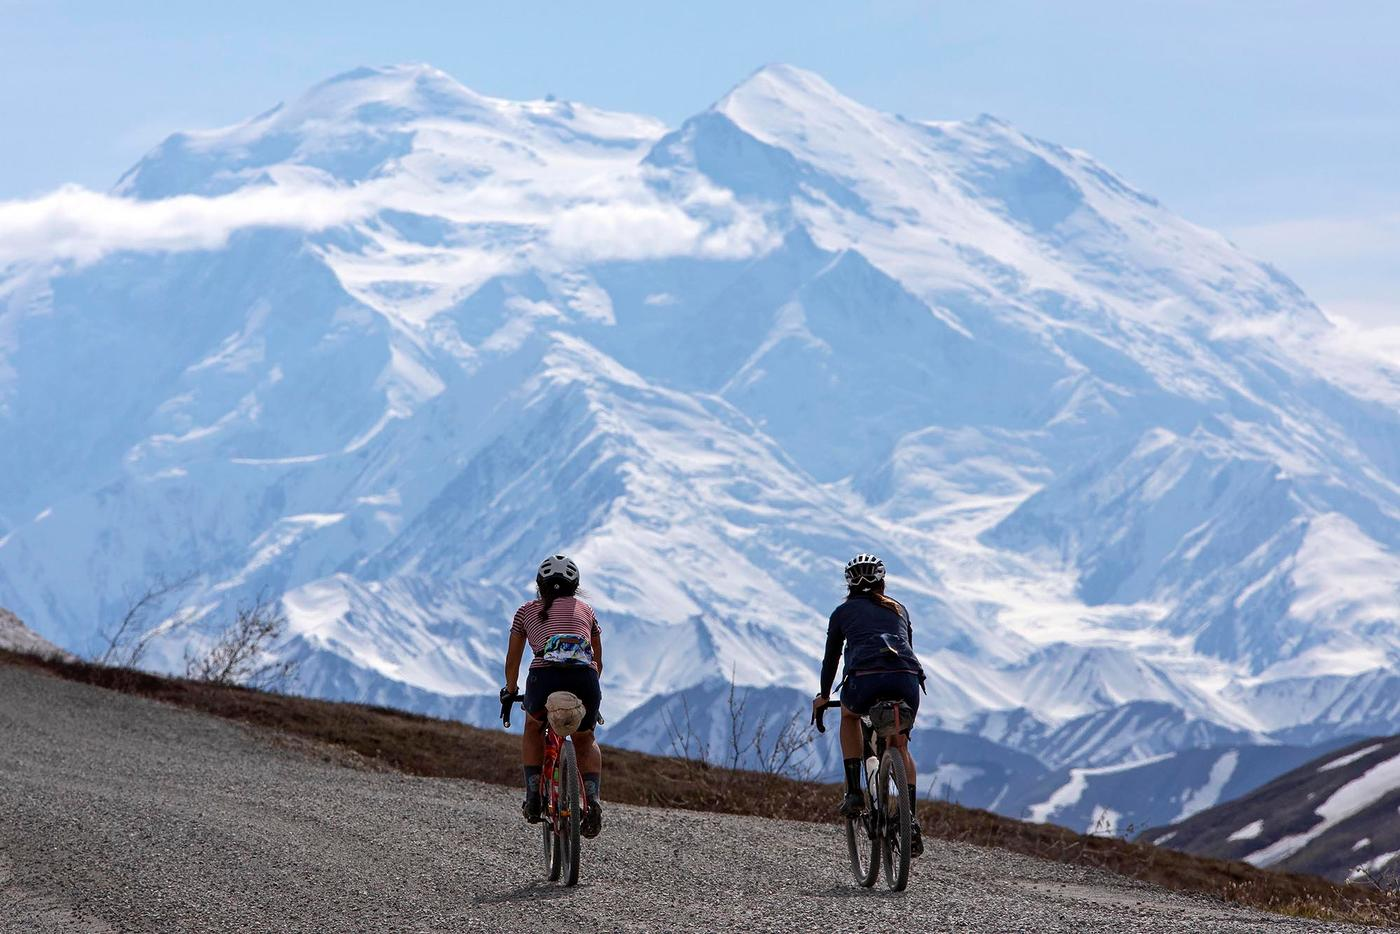 Back In Alaska to Share the Story of the Roads: Lael Wilcox Rides Alaska